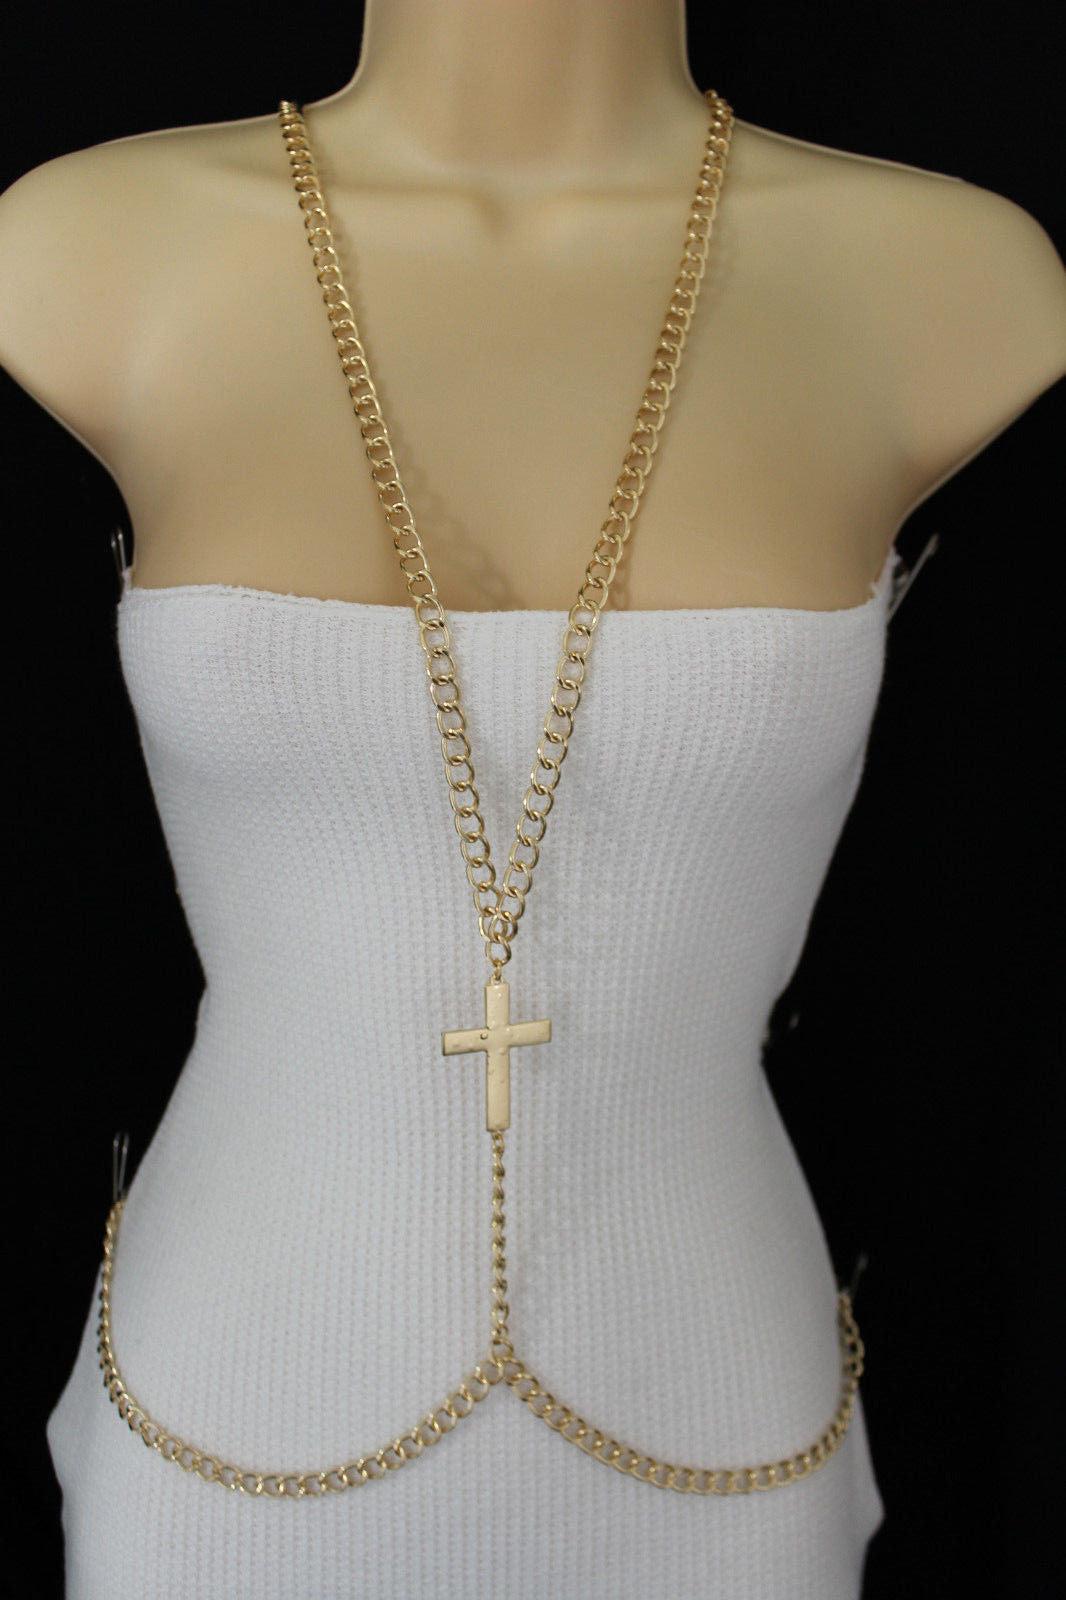 Gold Metal Body Chains Harness Cross Charm Long Necklace New Women Fas Alwaystyle4you